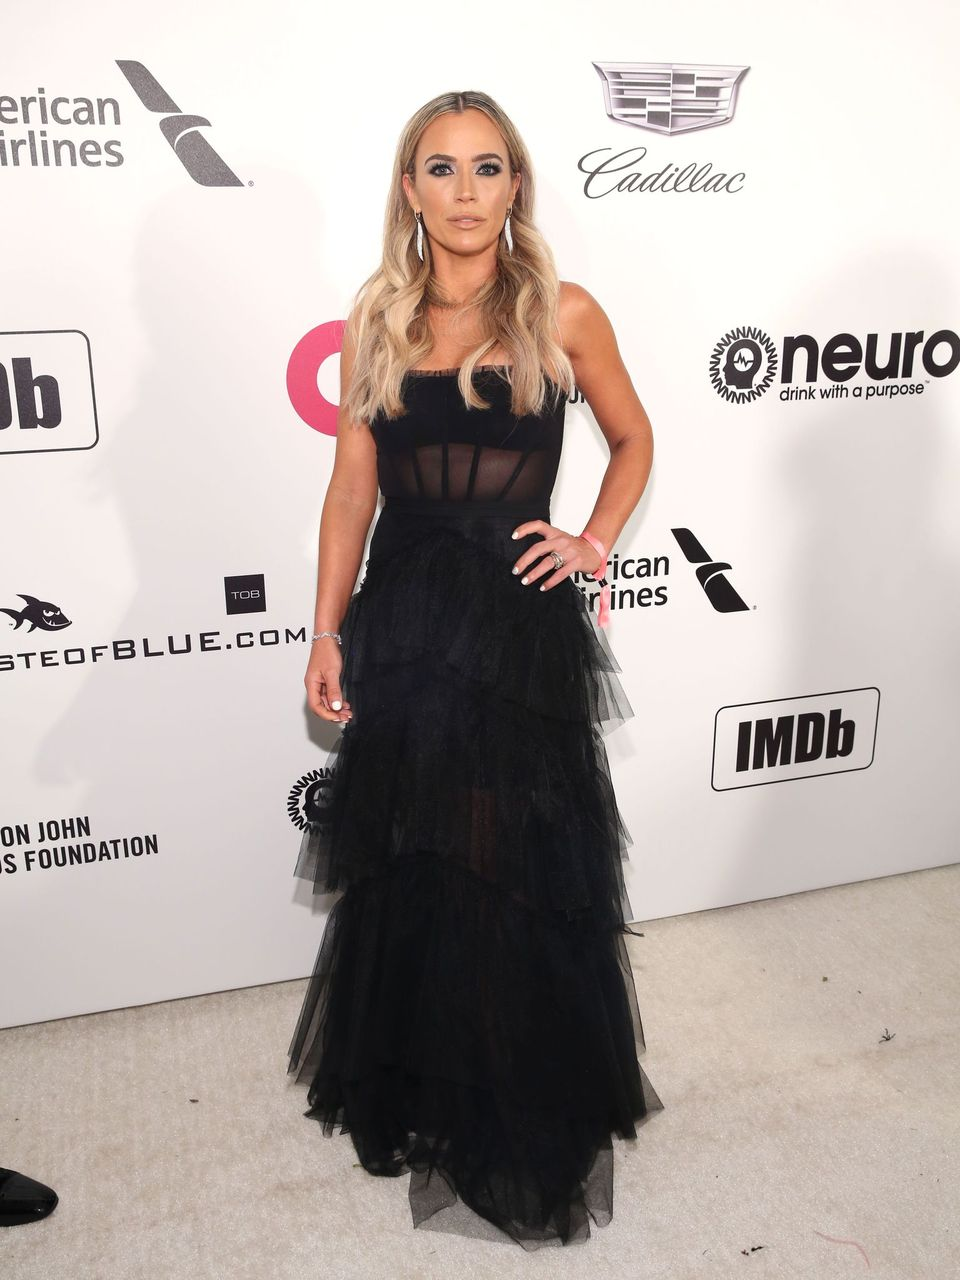 Teddi Mellencamp attends the 27th Annual Elton John AIDS Foundation Academy Awards on February 24, 2019 in West Hollywood, California.   Source: Getty Images